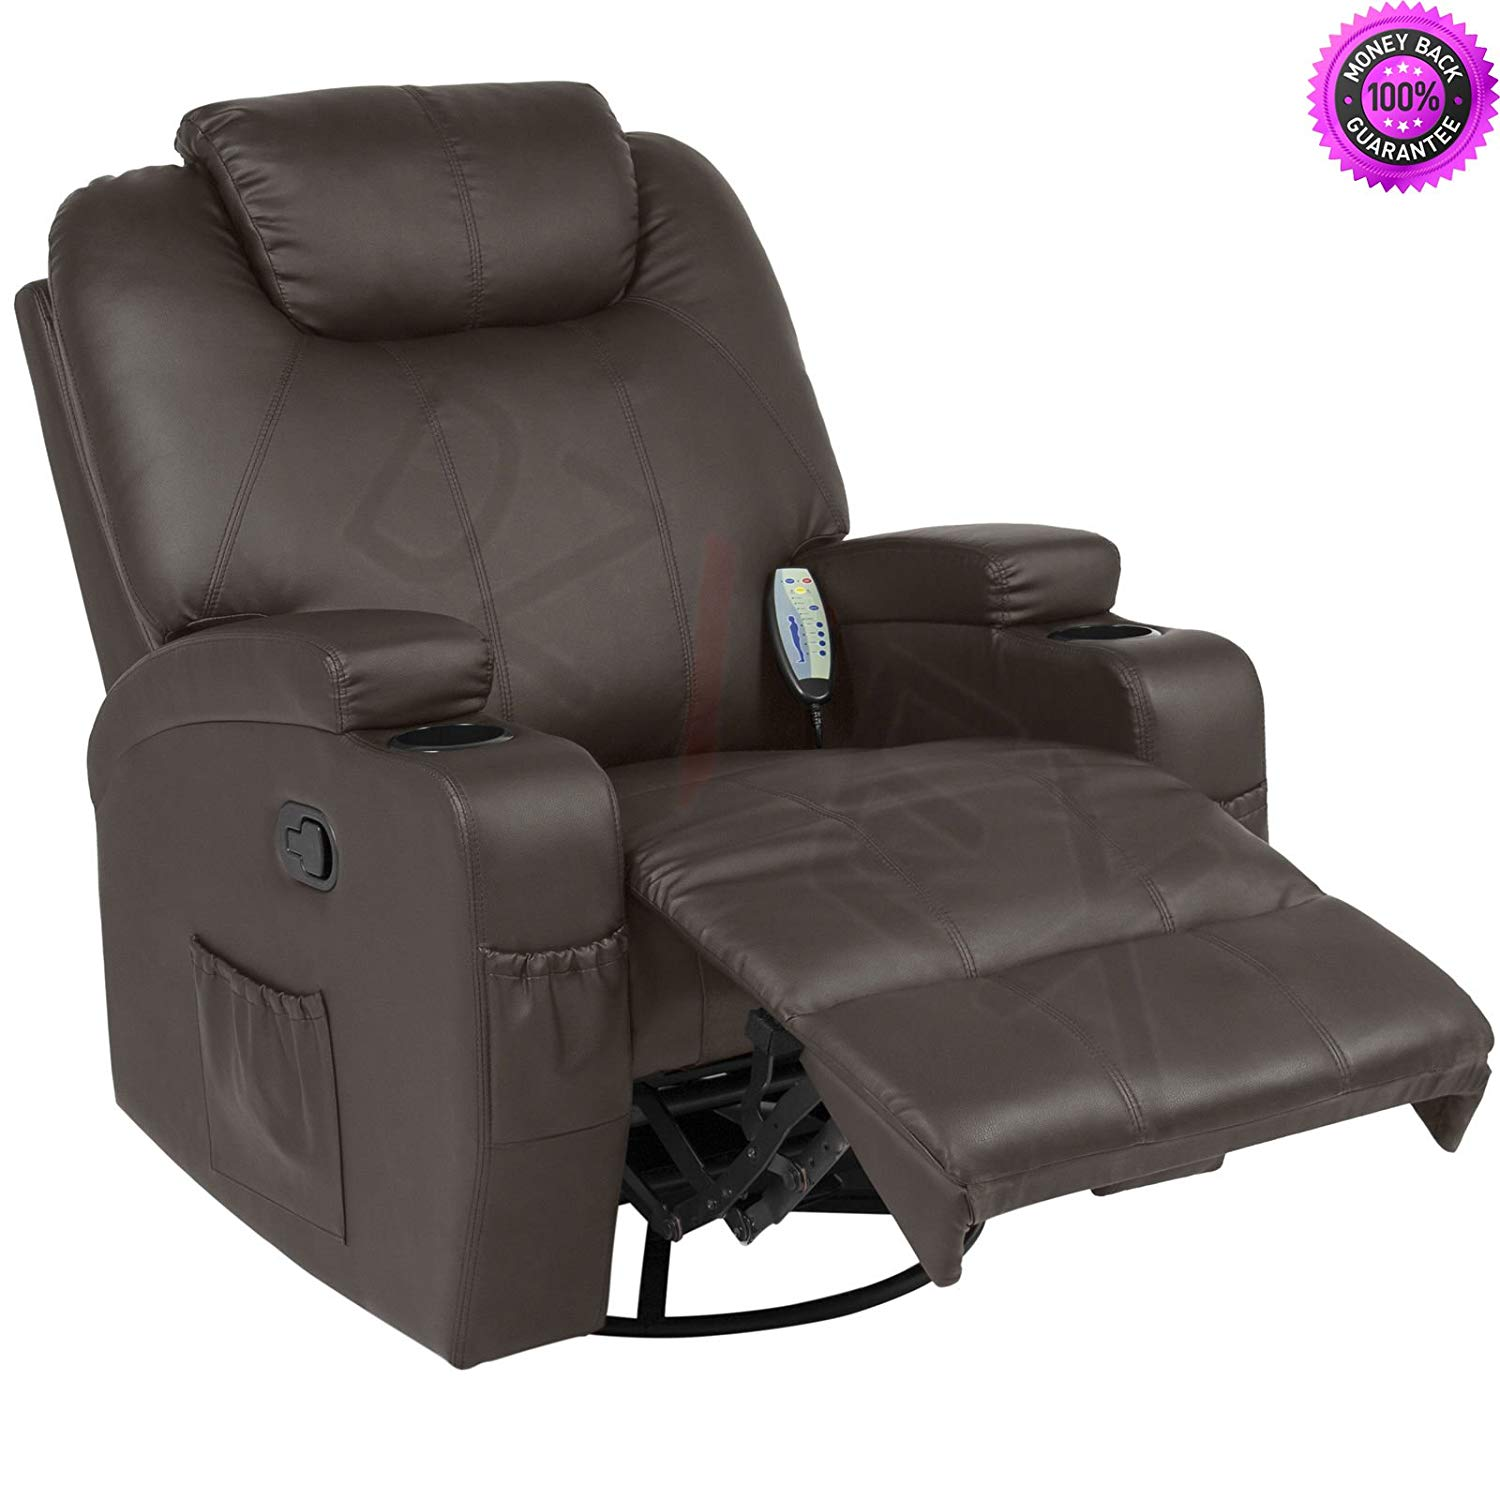 DzVeX__Executive Swivel Massage Recliner w/ 5 Heat Modes, 2 Cup Holders, 92lbs (Brown) And stacking chairs waiting room chairs office furniture chair mats for carpet chairs for sale cheap office